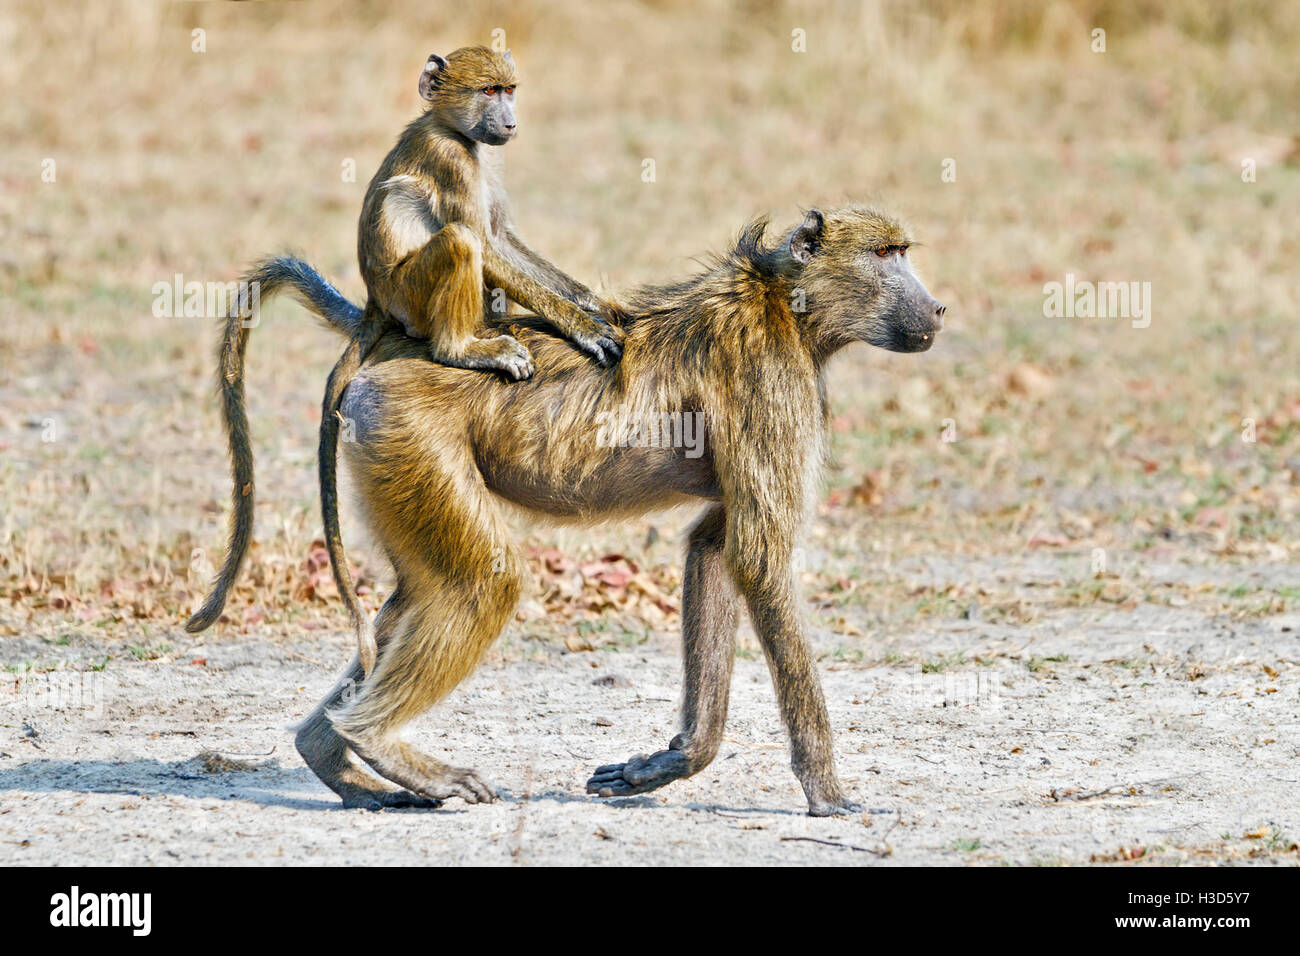 A juvenile Savanna baboon riding in the jockey position on its mother's back, Mosi-oa-Tunya National Park, Zambia - Stock Image